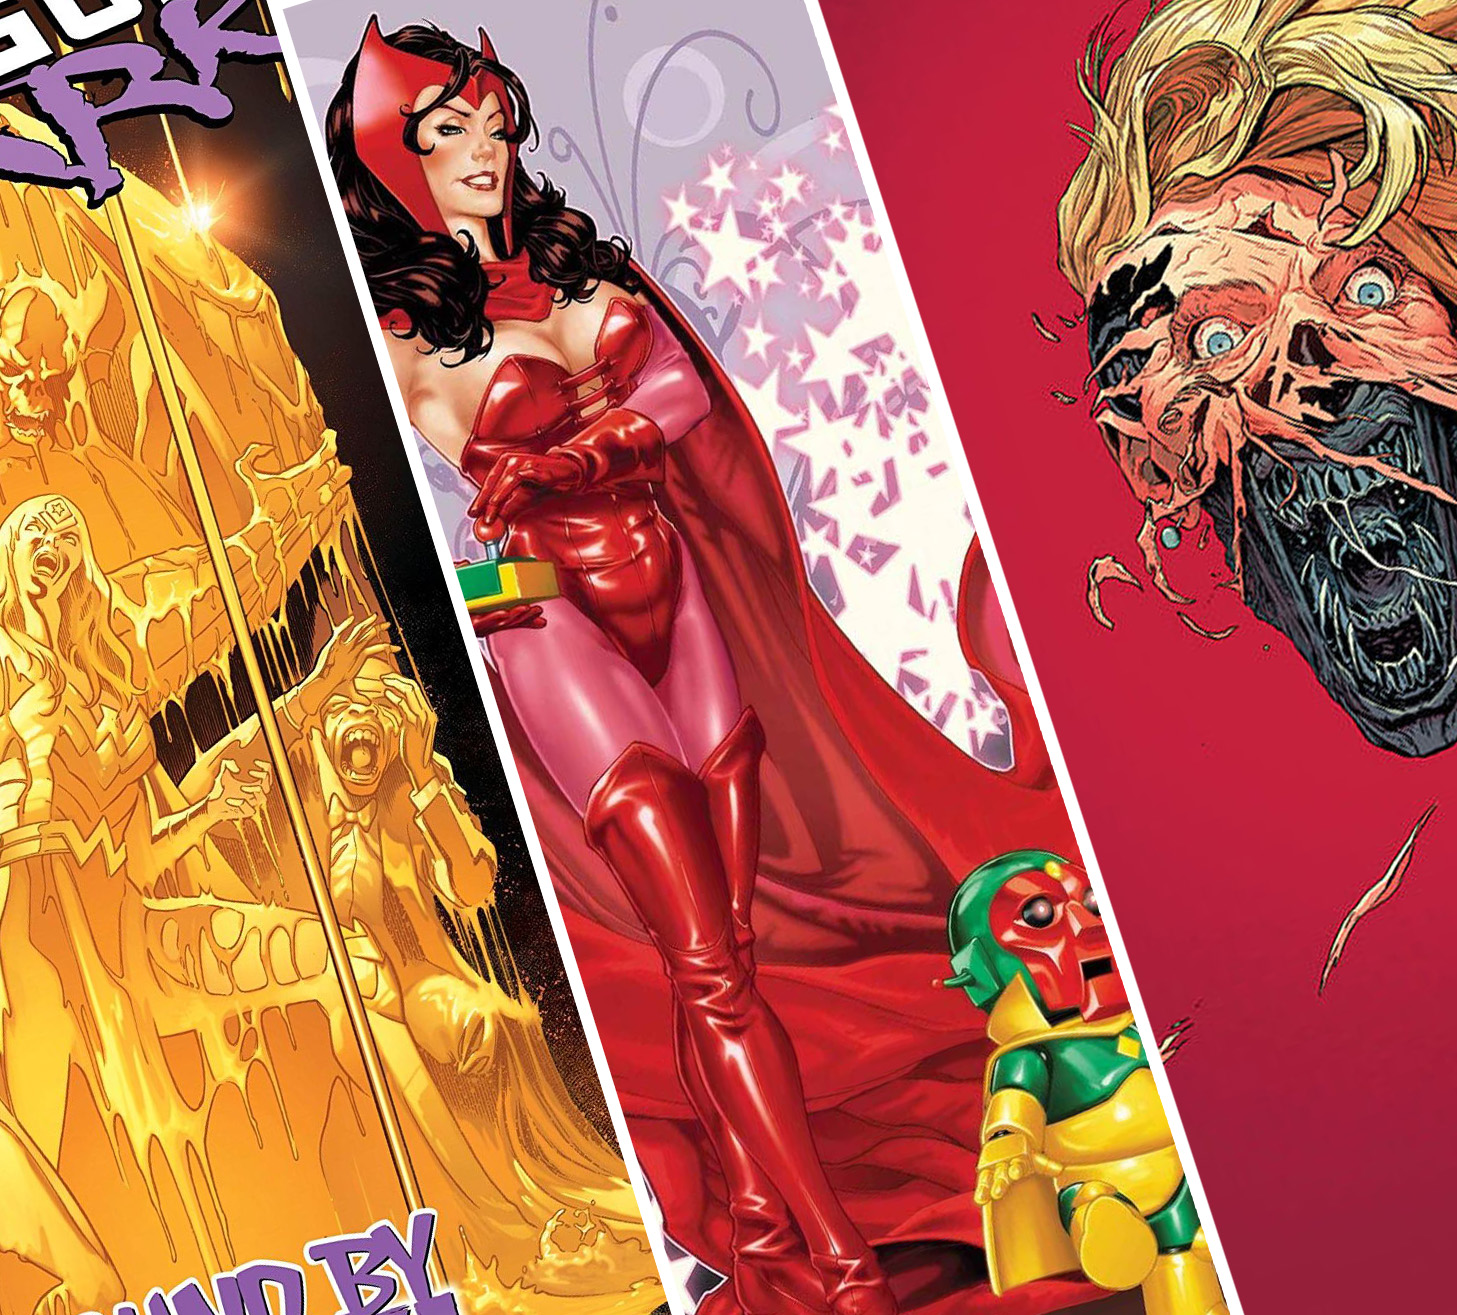 A recap of the latest news and best comics out in the last week.